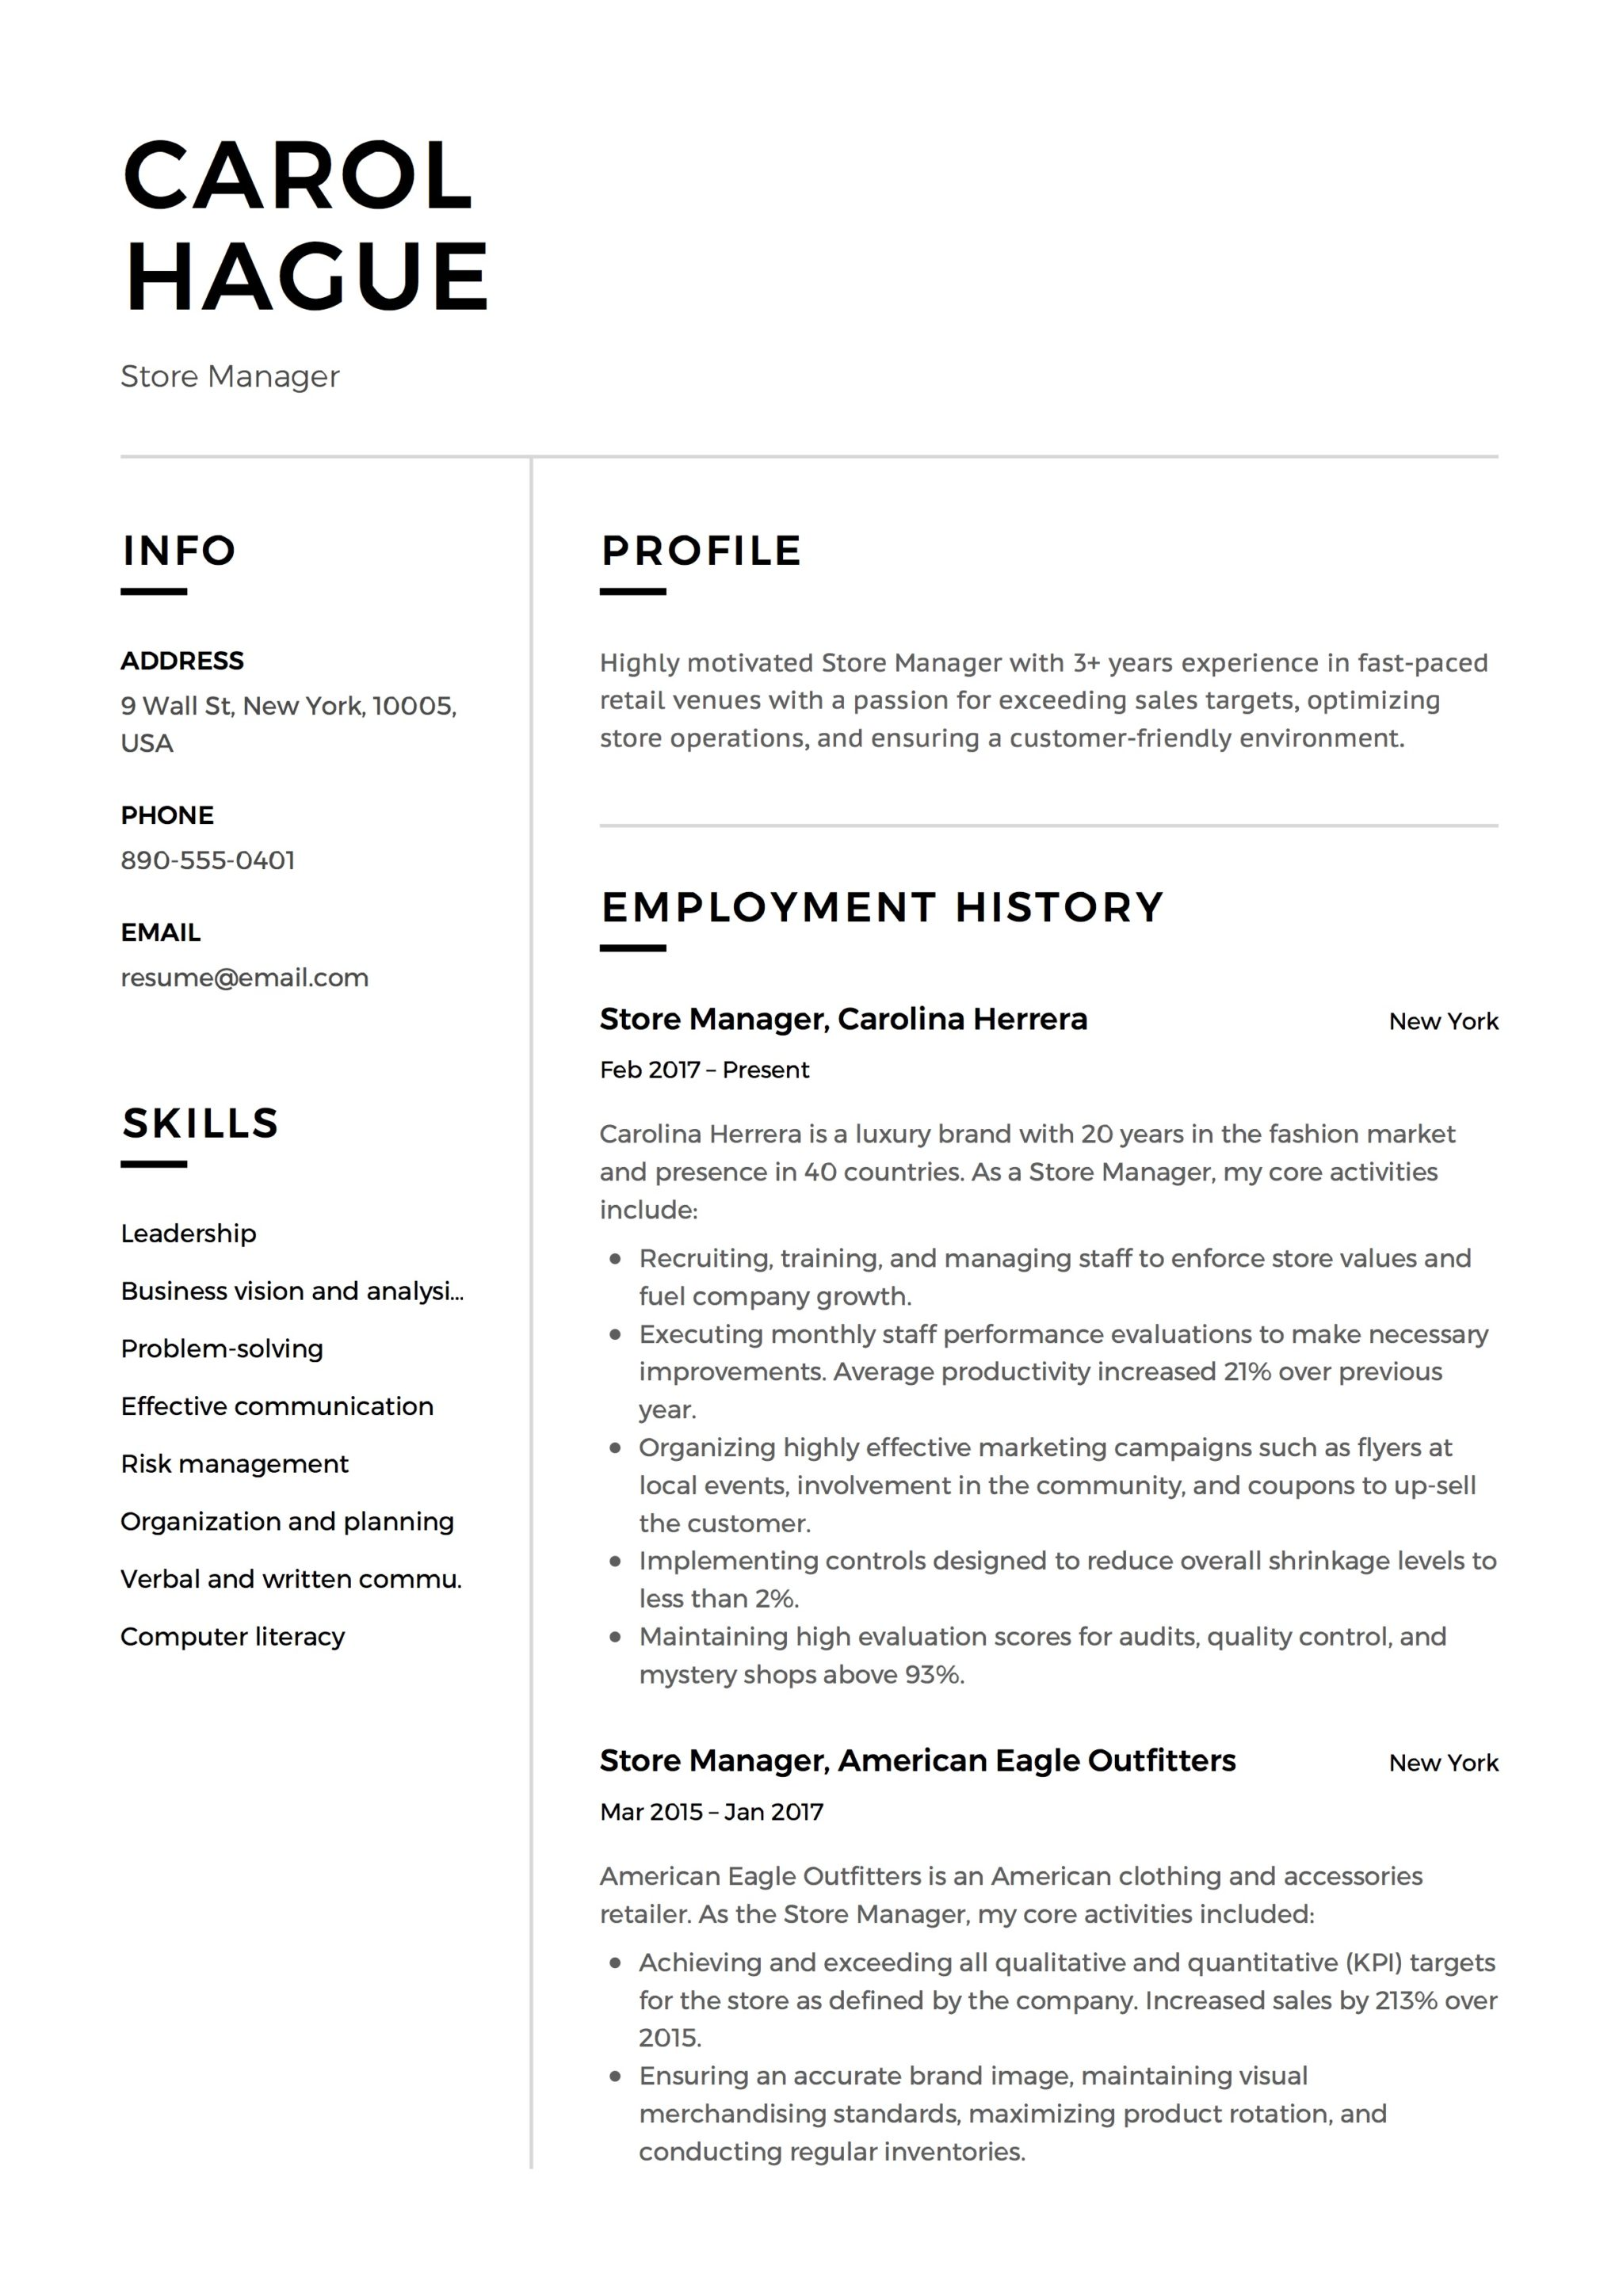 Store Manager Resume Guide Amp 12 Resume Samples